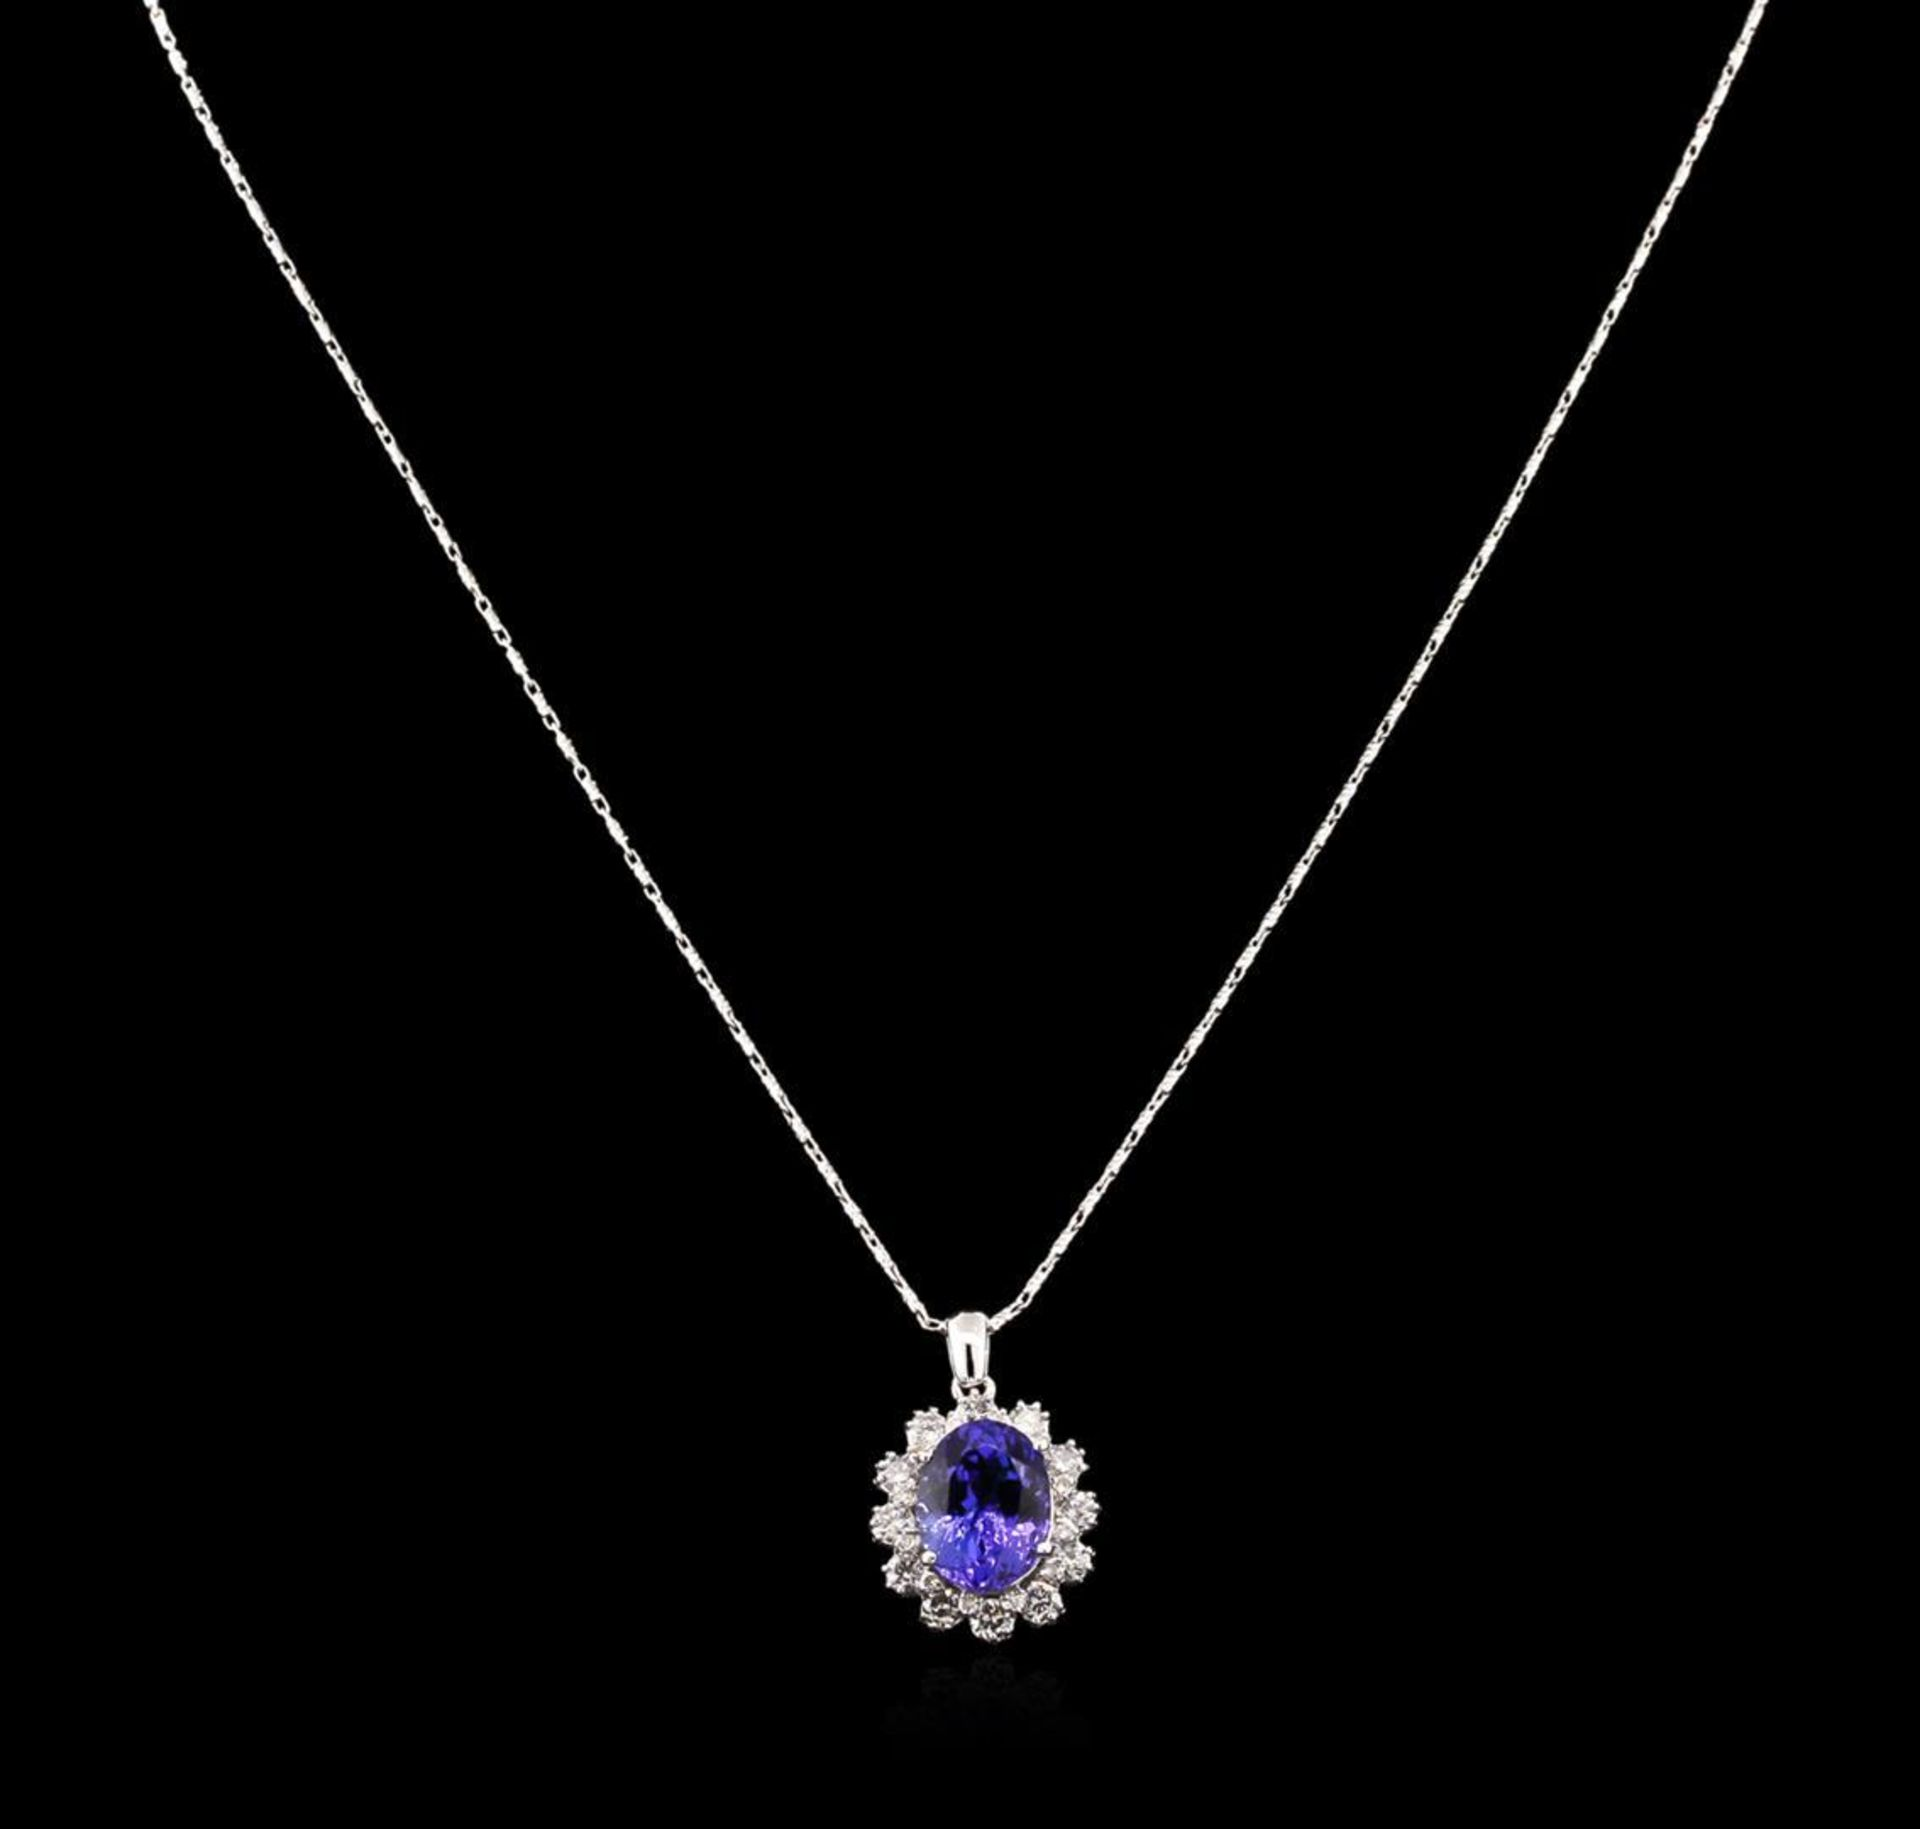 4.80 ctw Tanzanite and Diamond Pendant With Chain - 14KT White Gold - Image 2 of 3